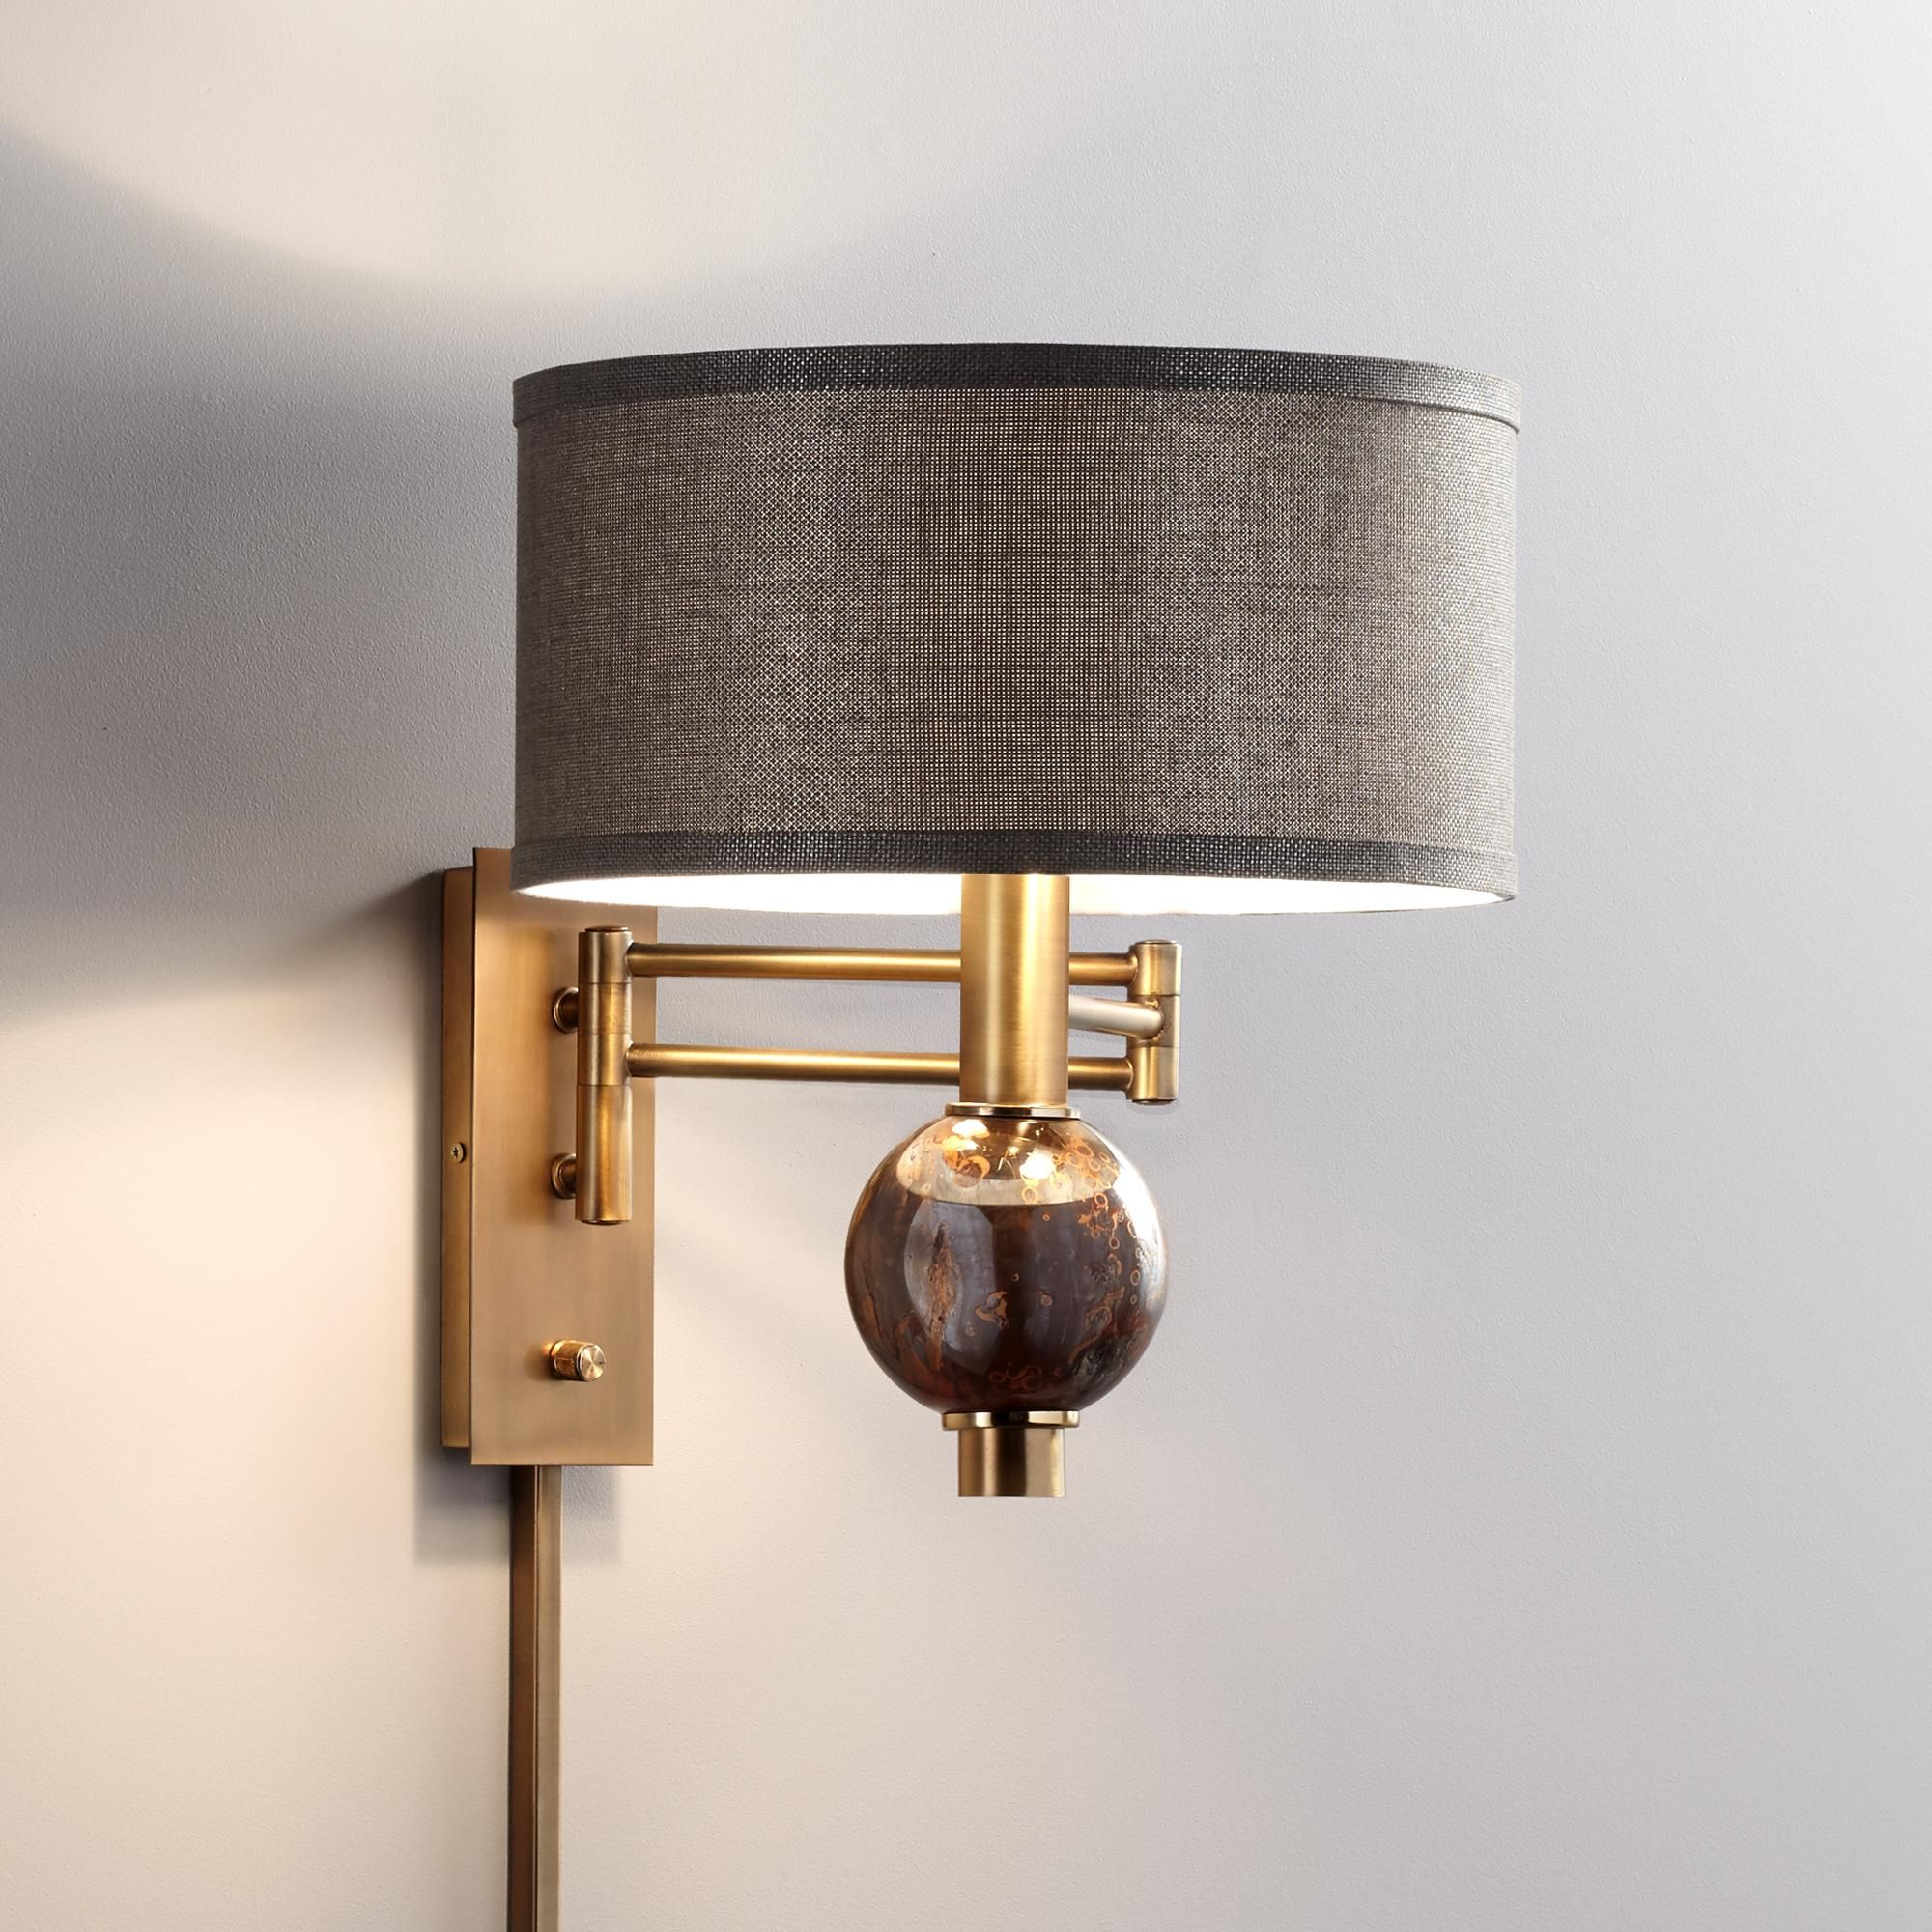 Richford Brass Plug In Swing Arm Wall Lamp With Dimmer 1r145